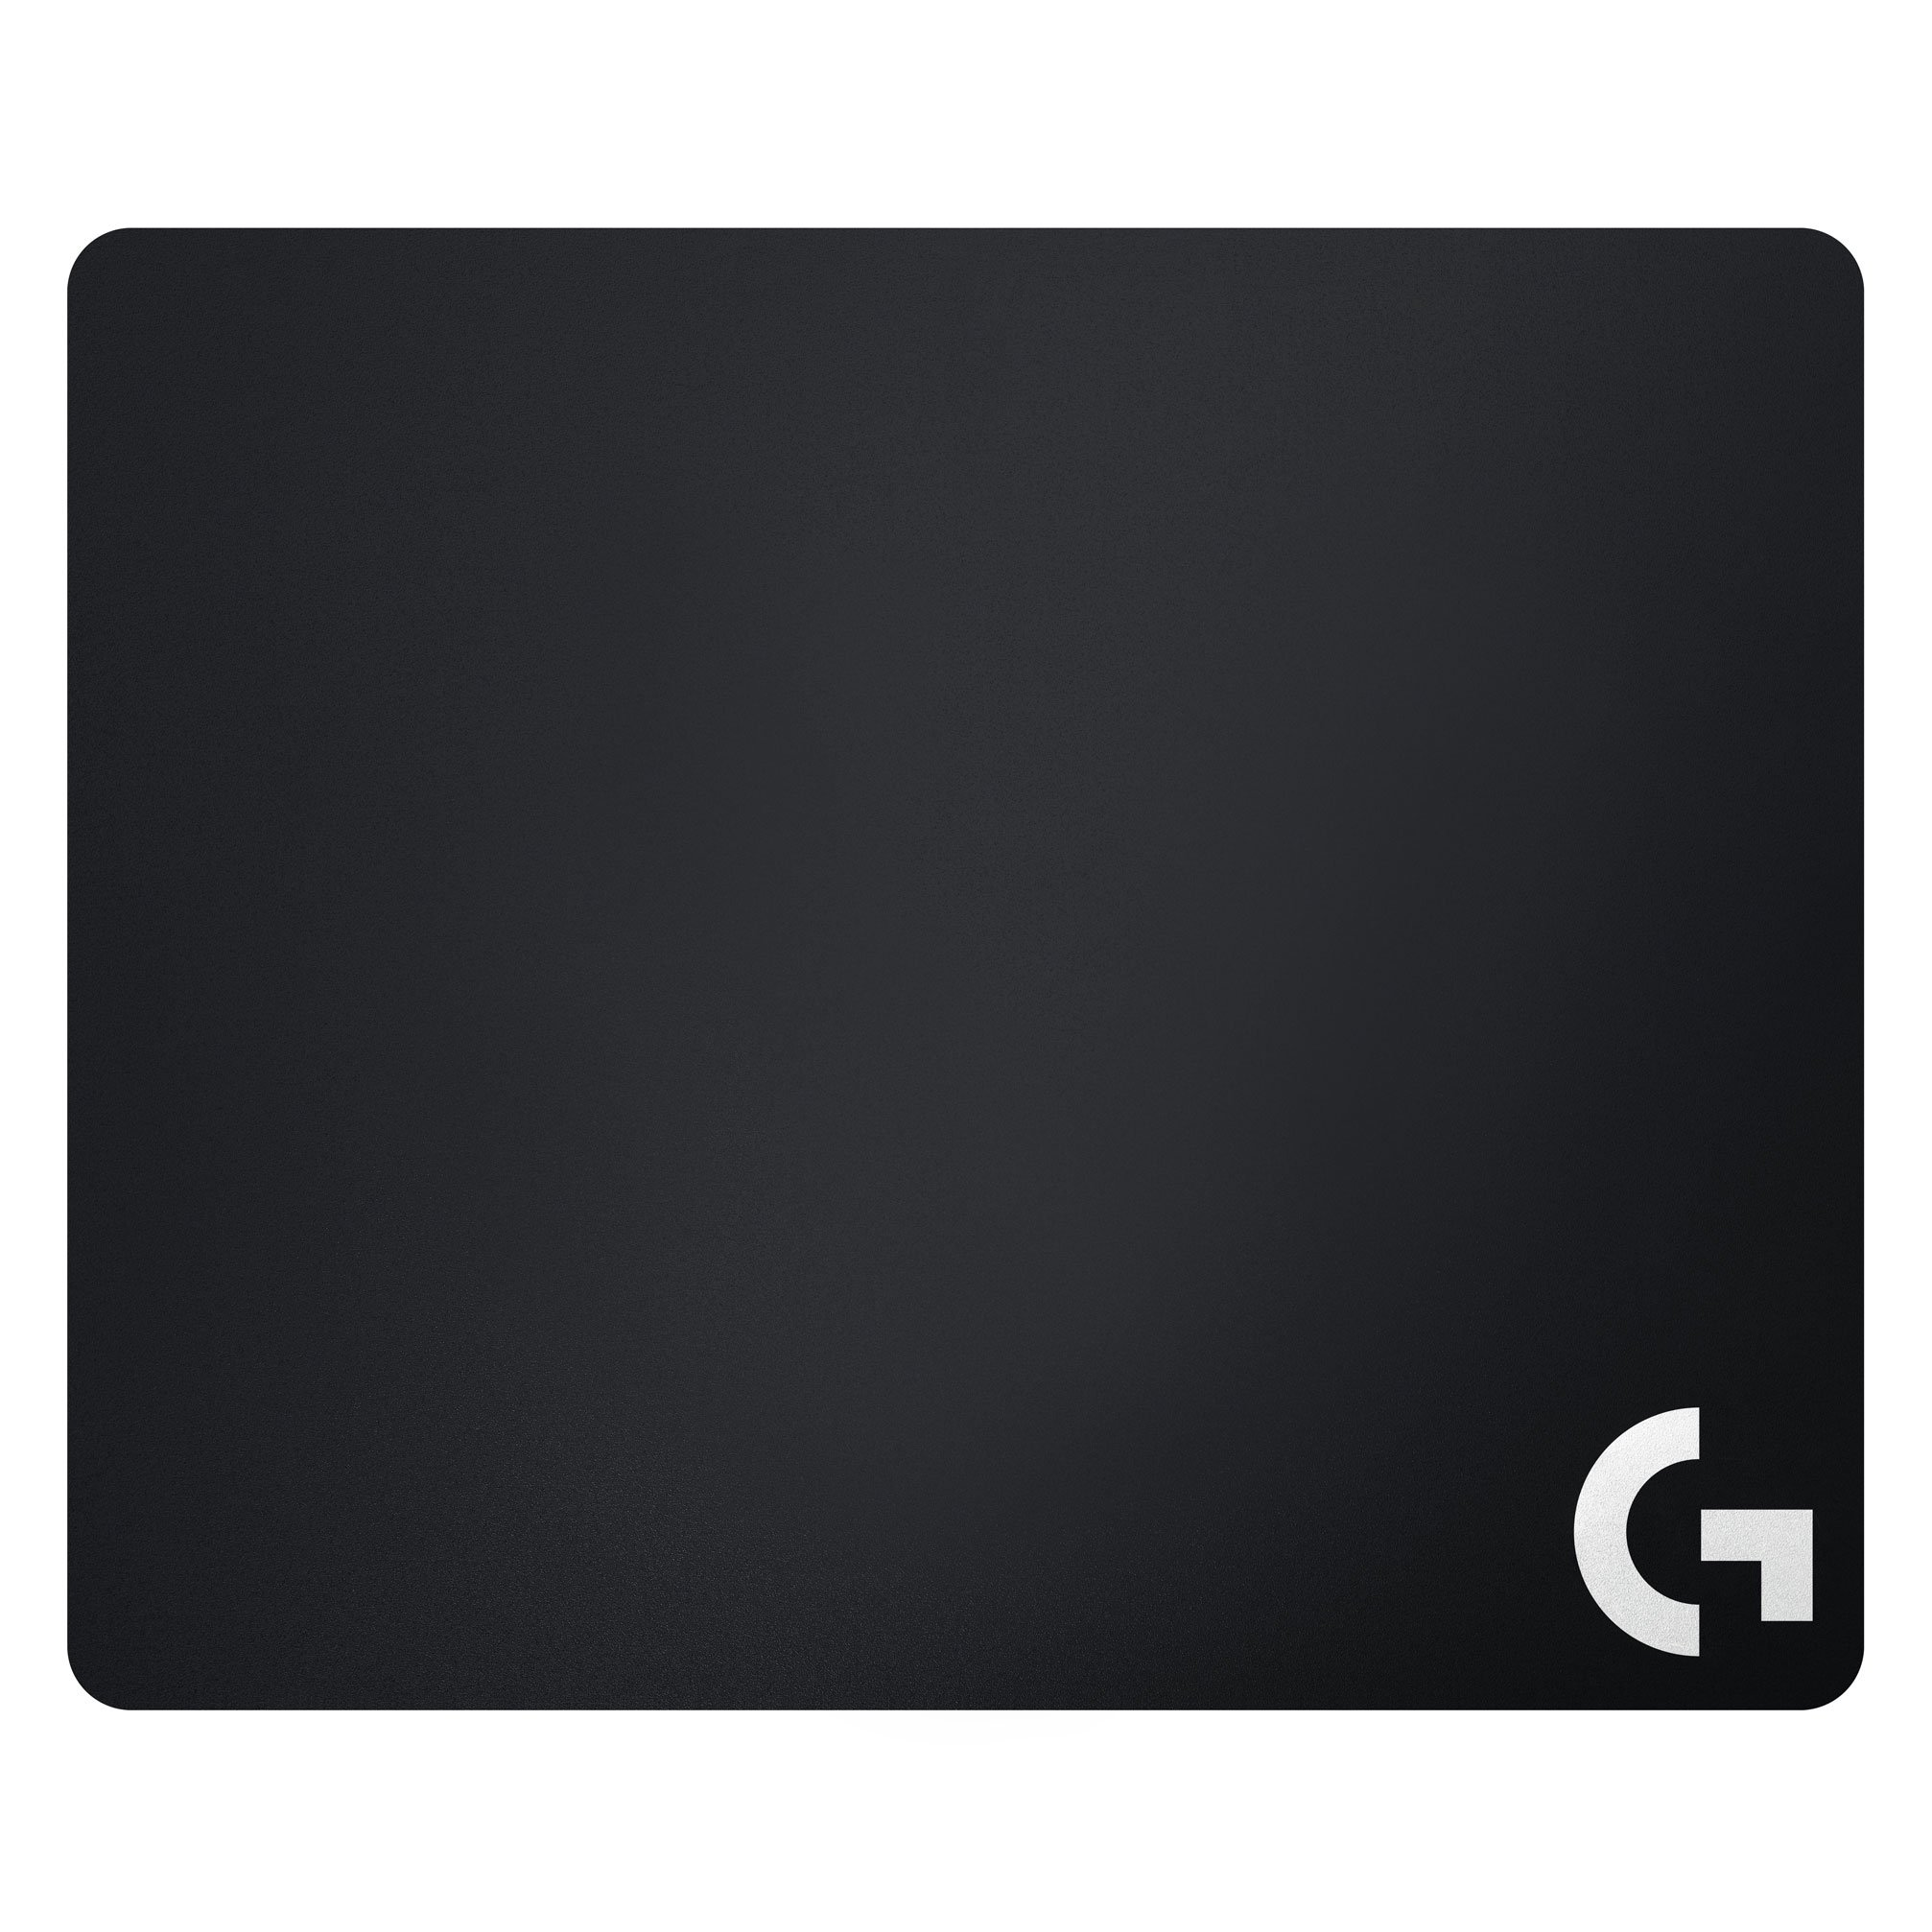 Logitech G640 Cloth Gaming Mouse Pad, 460 x 400mm, Thickness 3mm, Moderate surface friction, Consistent surface texture, Stable, comfortable rubber base, Rollable - Black